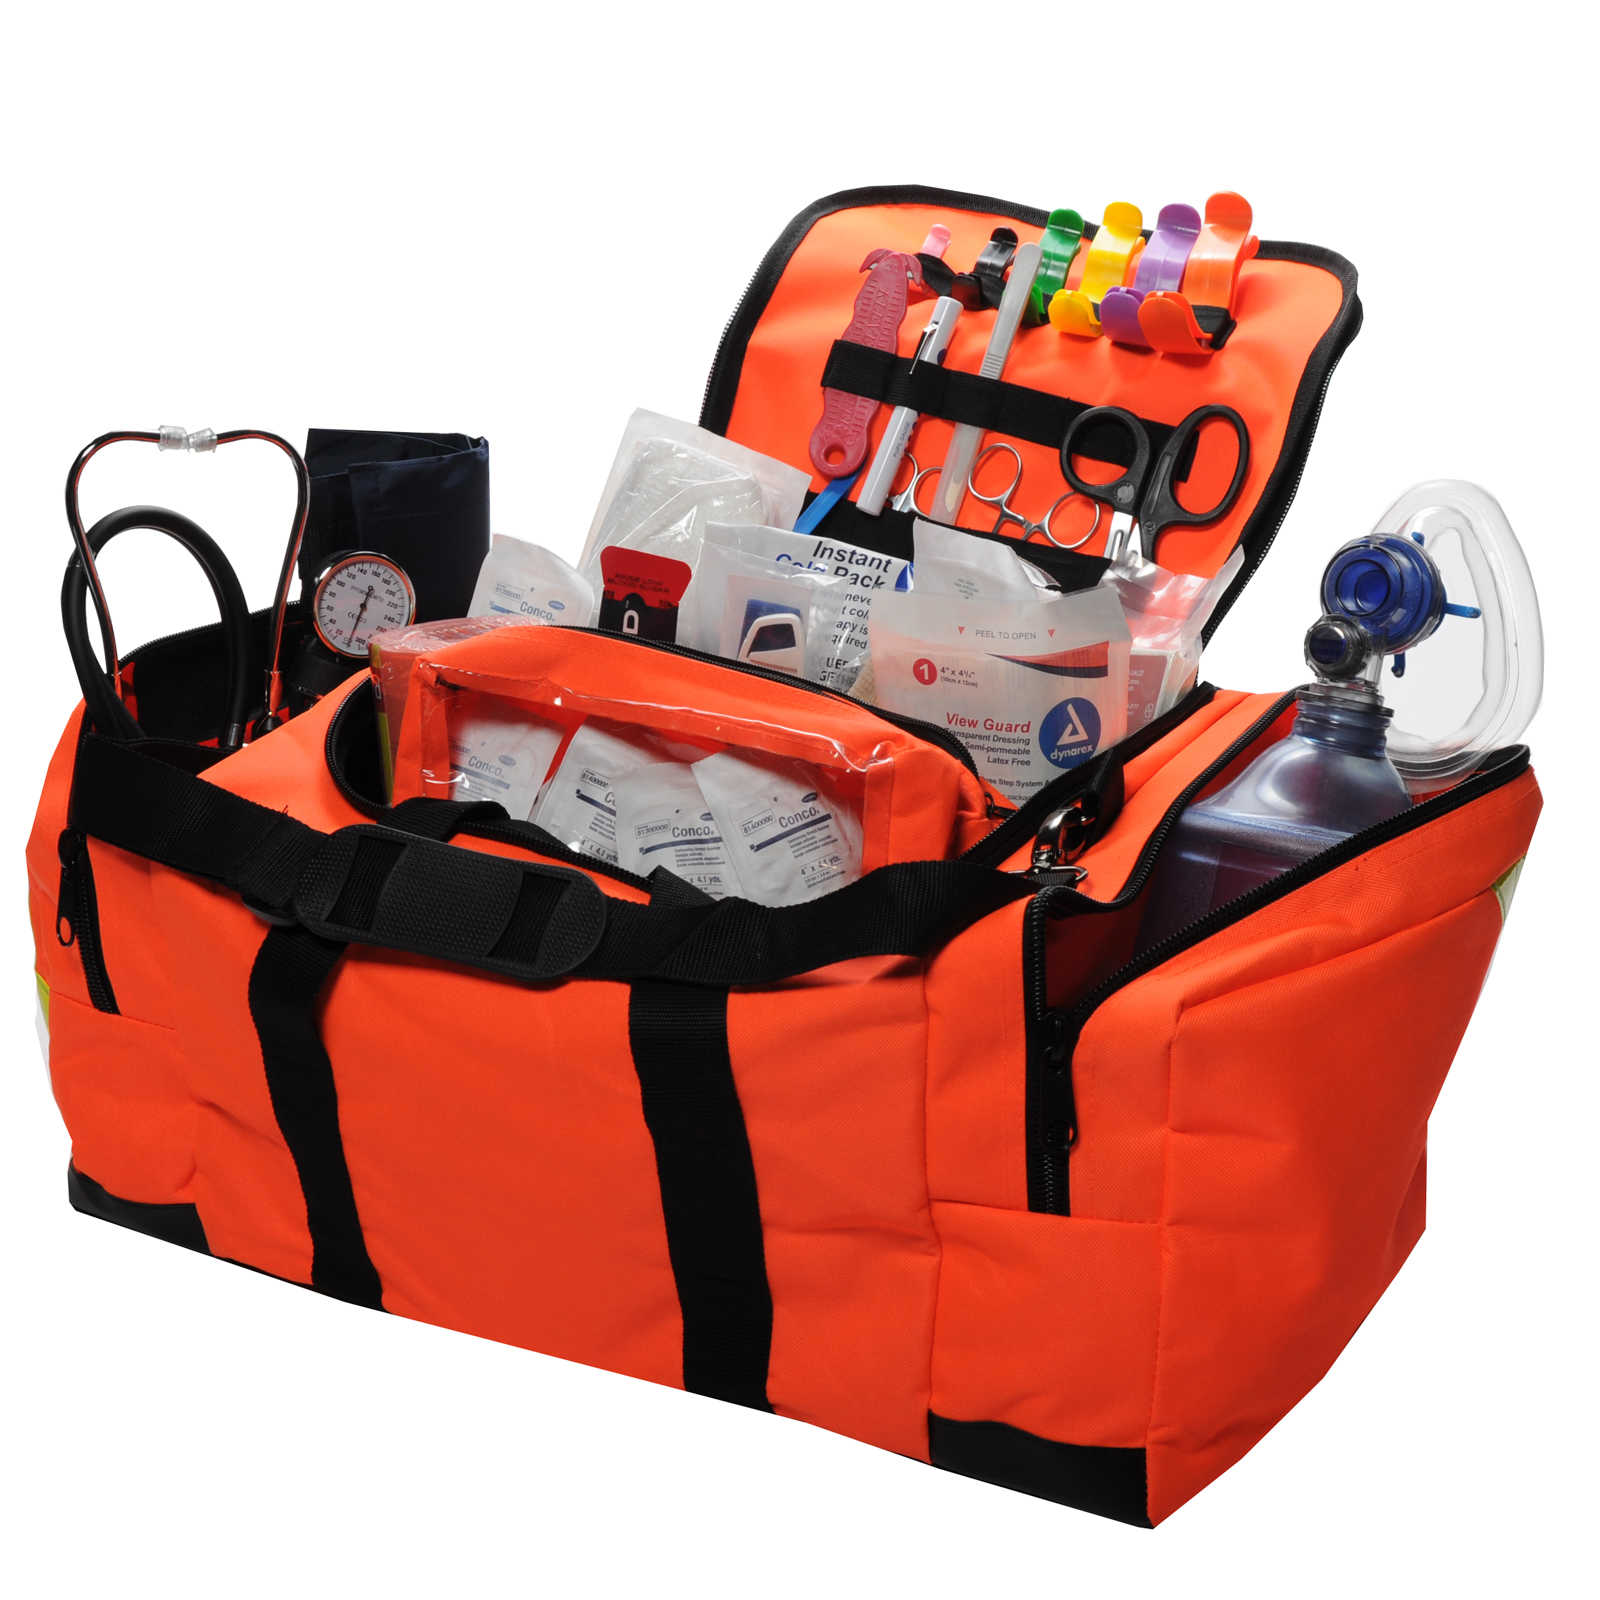 Deluxe First Responder Medical Kit | MFASCO Health & Safety